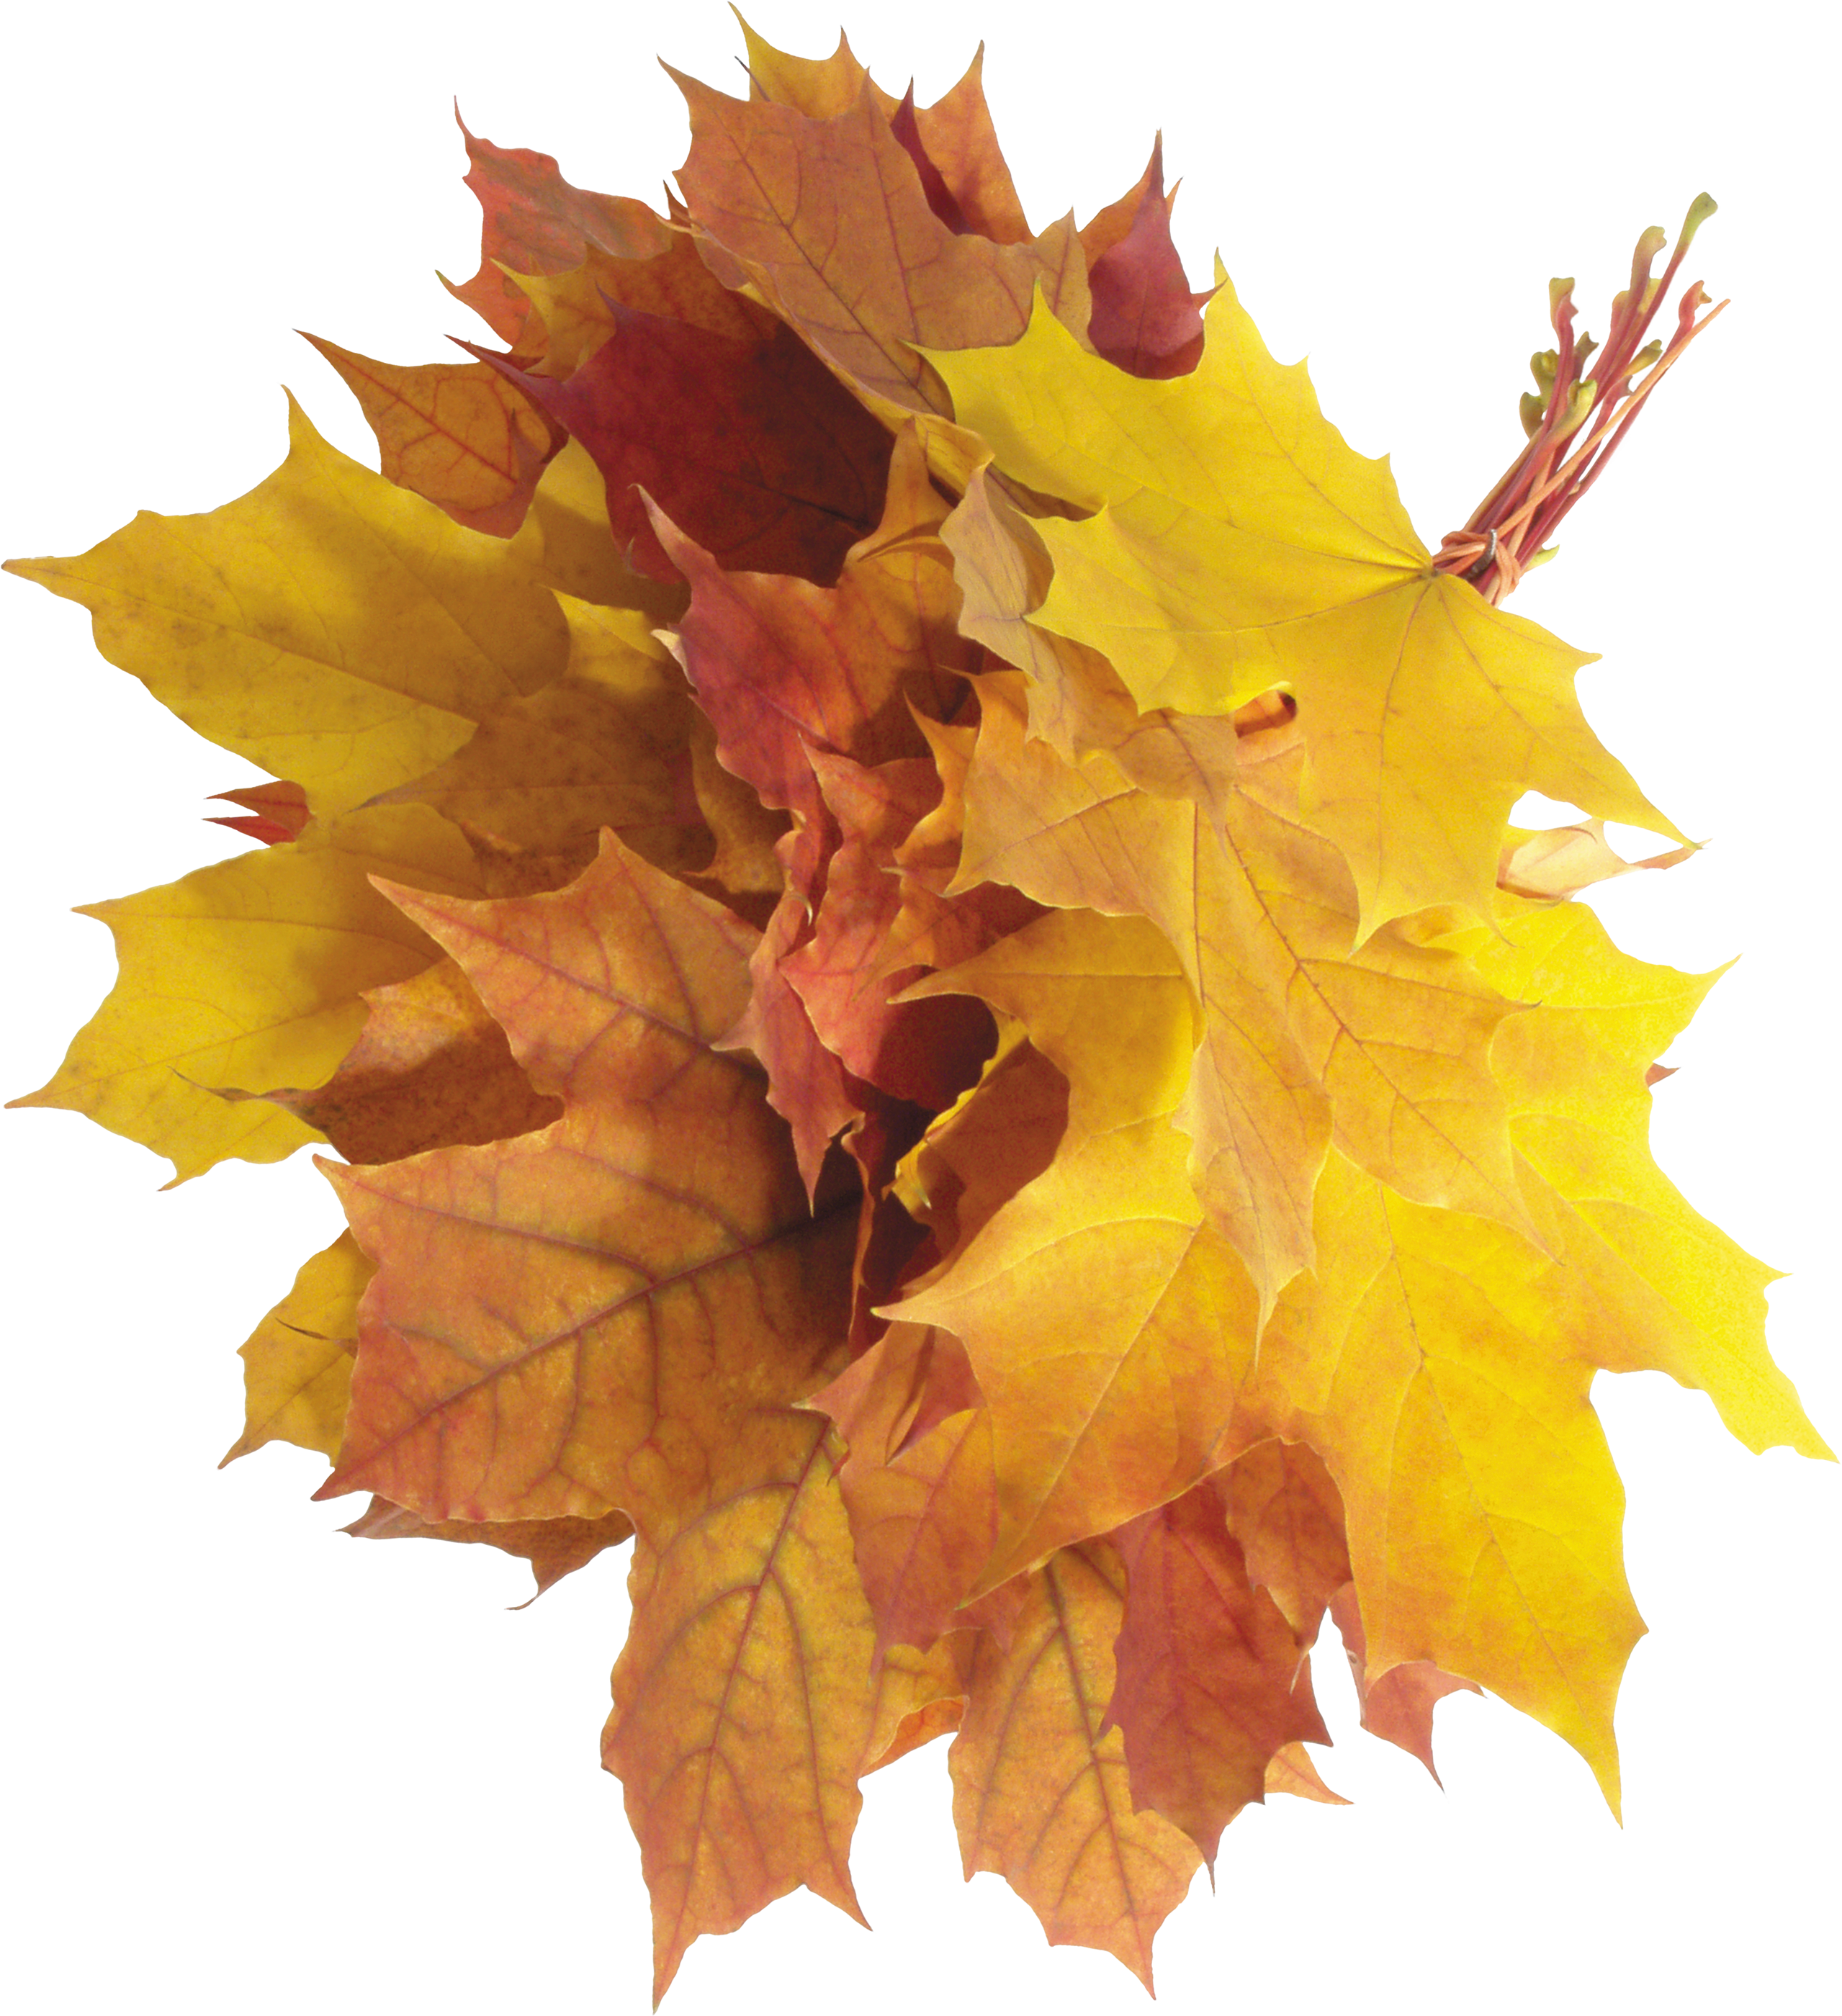 Autumn leaves image purepng. Free png images download